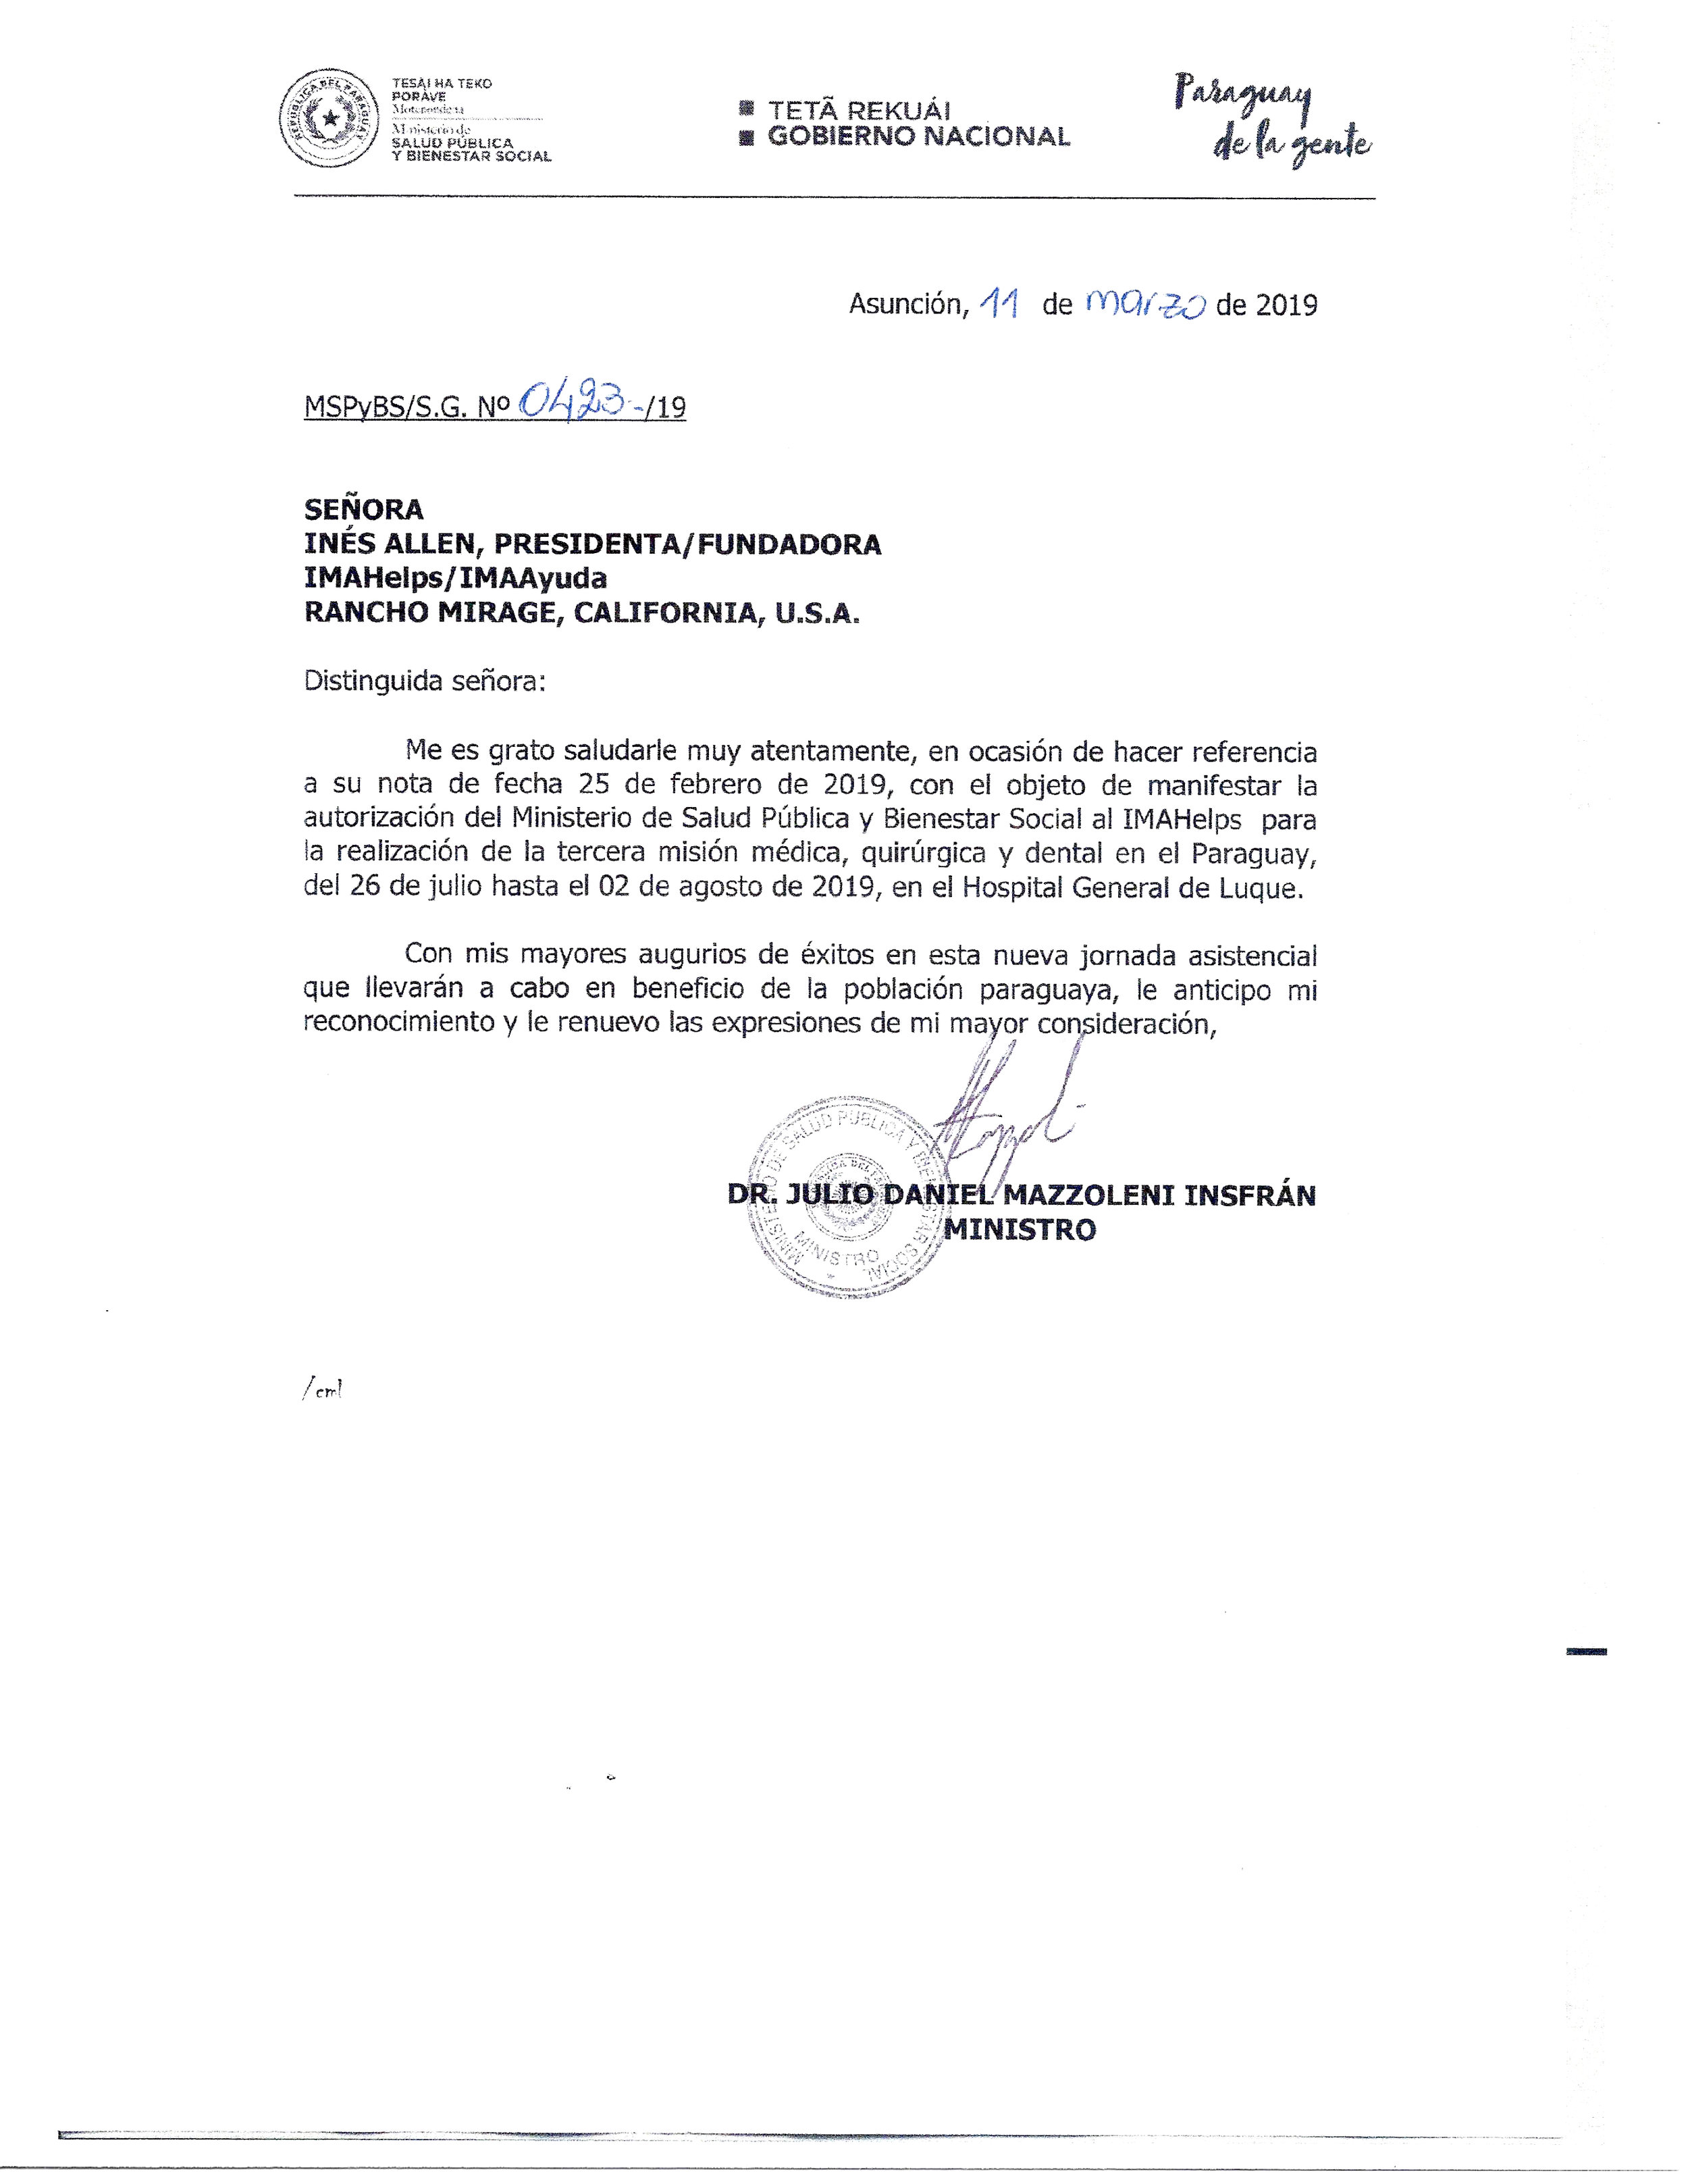 2019 Letter from the Ministry of Public Health in Paraguay… - Distinguished missus:I am pleased to greet you very attentively, on the occasion of referring to your note dated February 25, 2019, in order to manifest the authorization of the Ministry of Public Health and Social Welfare to IMAHelps for the completion of the third medical mission, surgical and dental in Paraguay, from the 26th of July until the 2nd of August of 2019, at the General Hospital of Luque.With my greatest auguries of success in this new day of care to be carried out for the benefit of the Paraguayan population, I advance my recognition and renew the expressions of my highest consideration,Dr. Julio Daniel Mazzoleni InsfránMinister